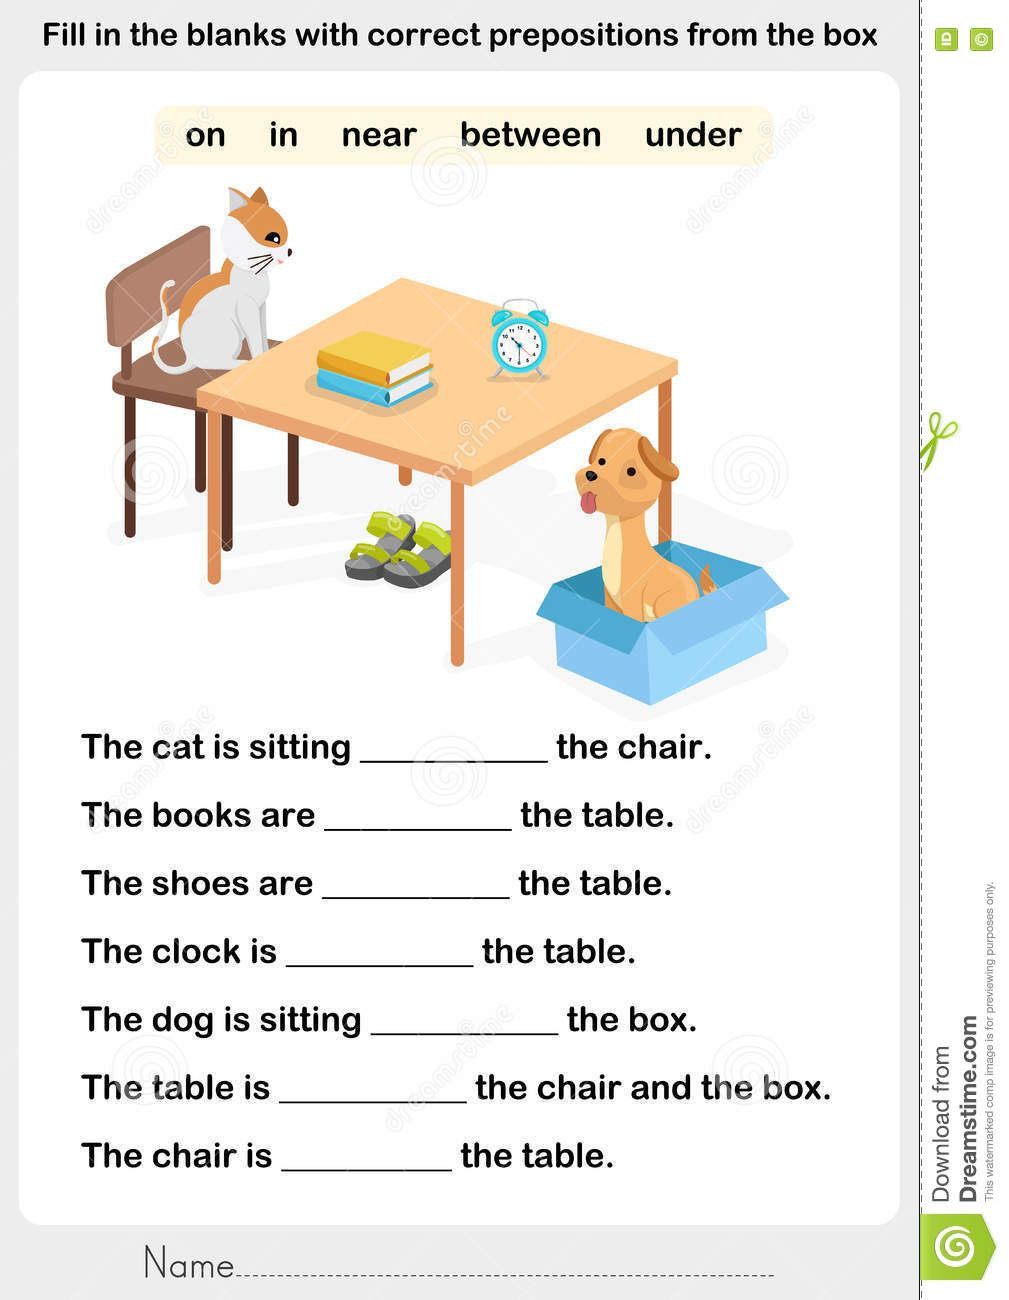 Preposition Worksheets Middle School Illustration About Fill In the Blanks with Correct